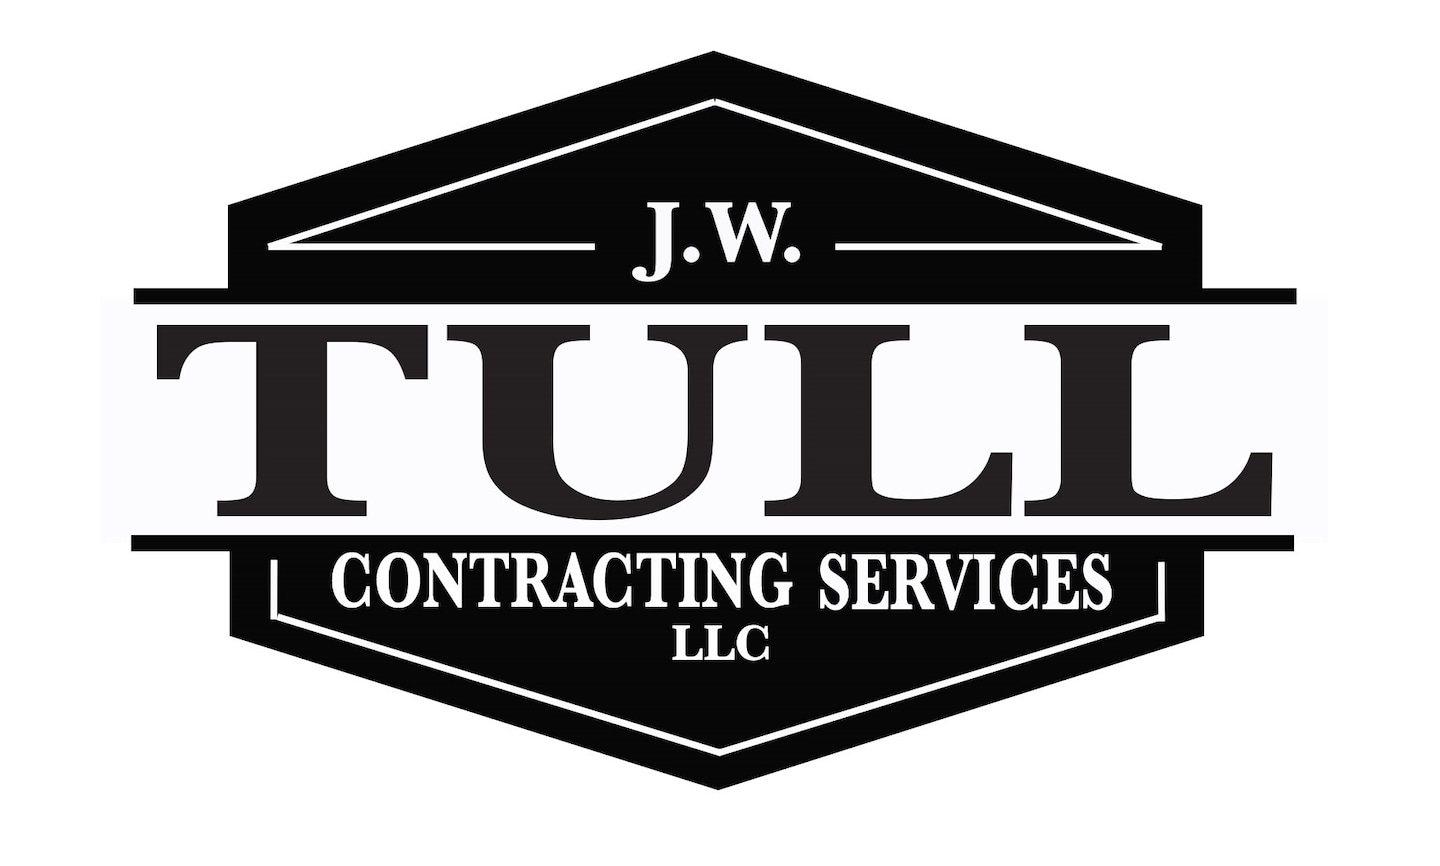 J.W. Tull Contracting LLC